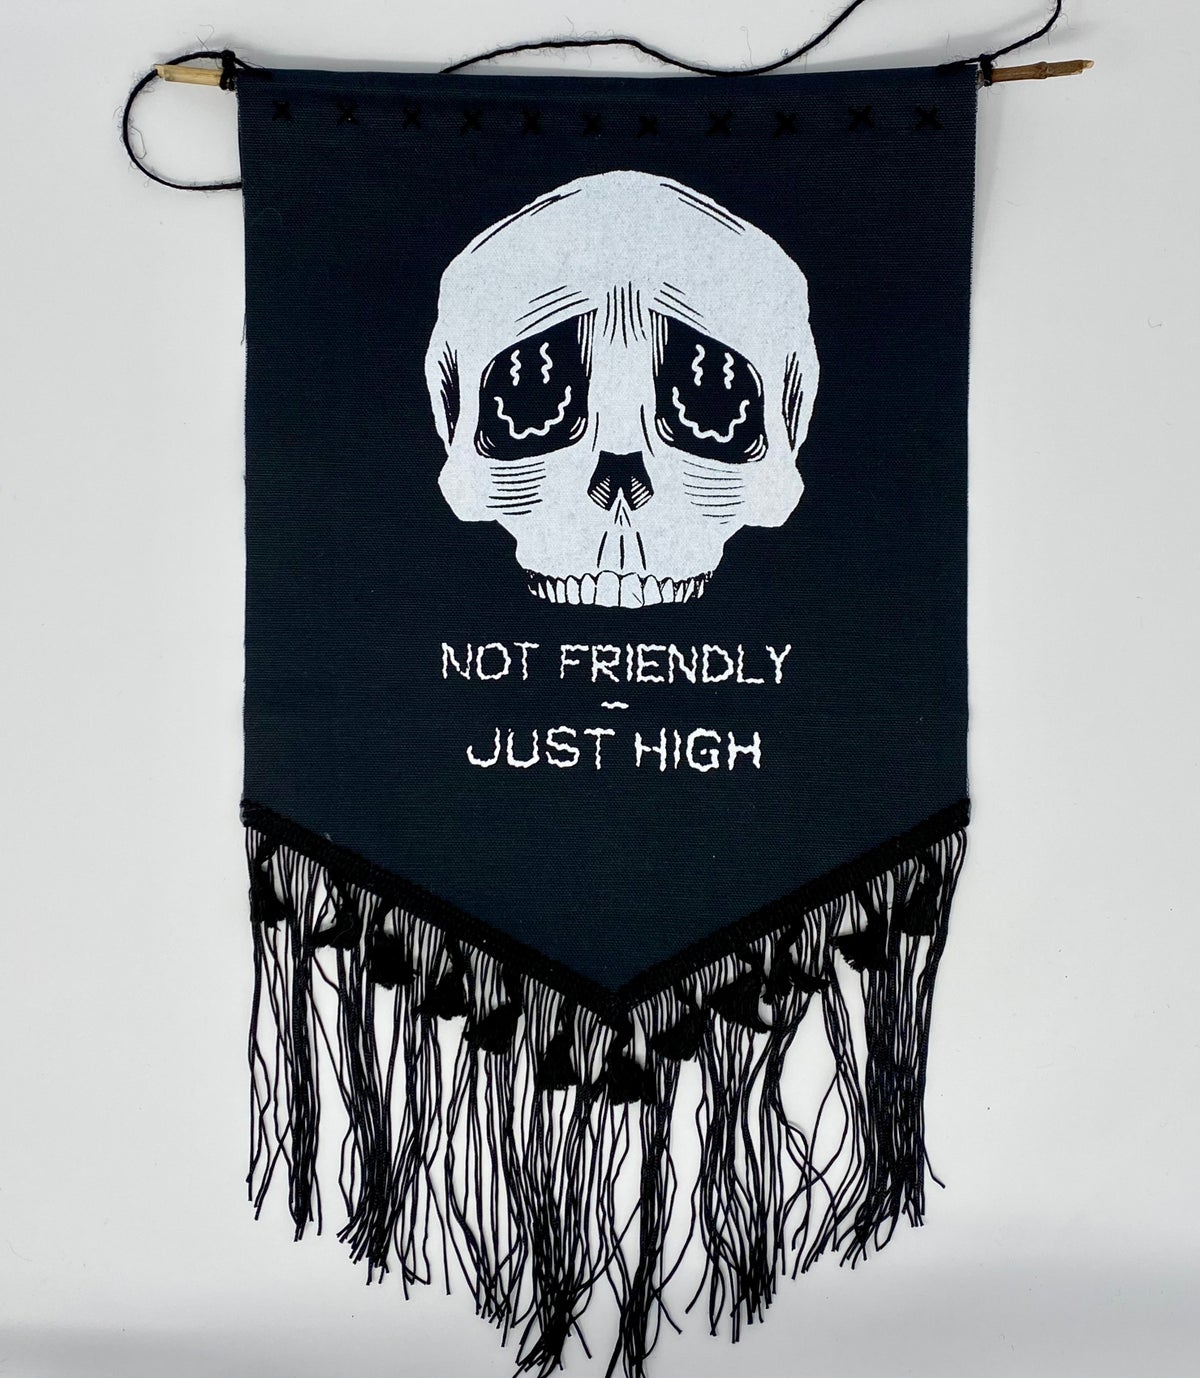 Image of Not Friendly banners